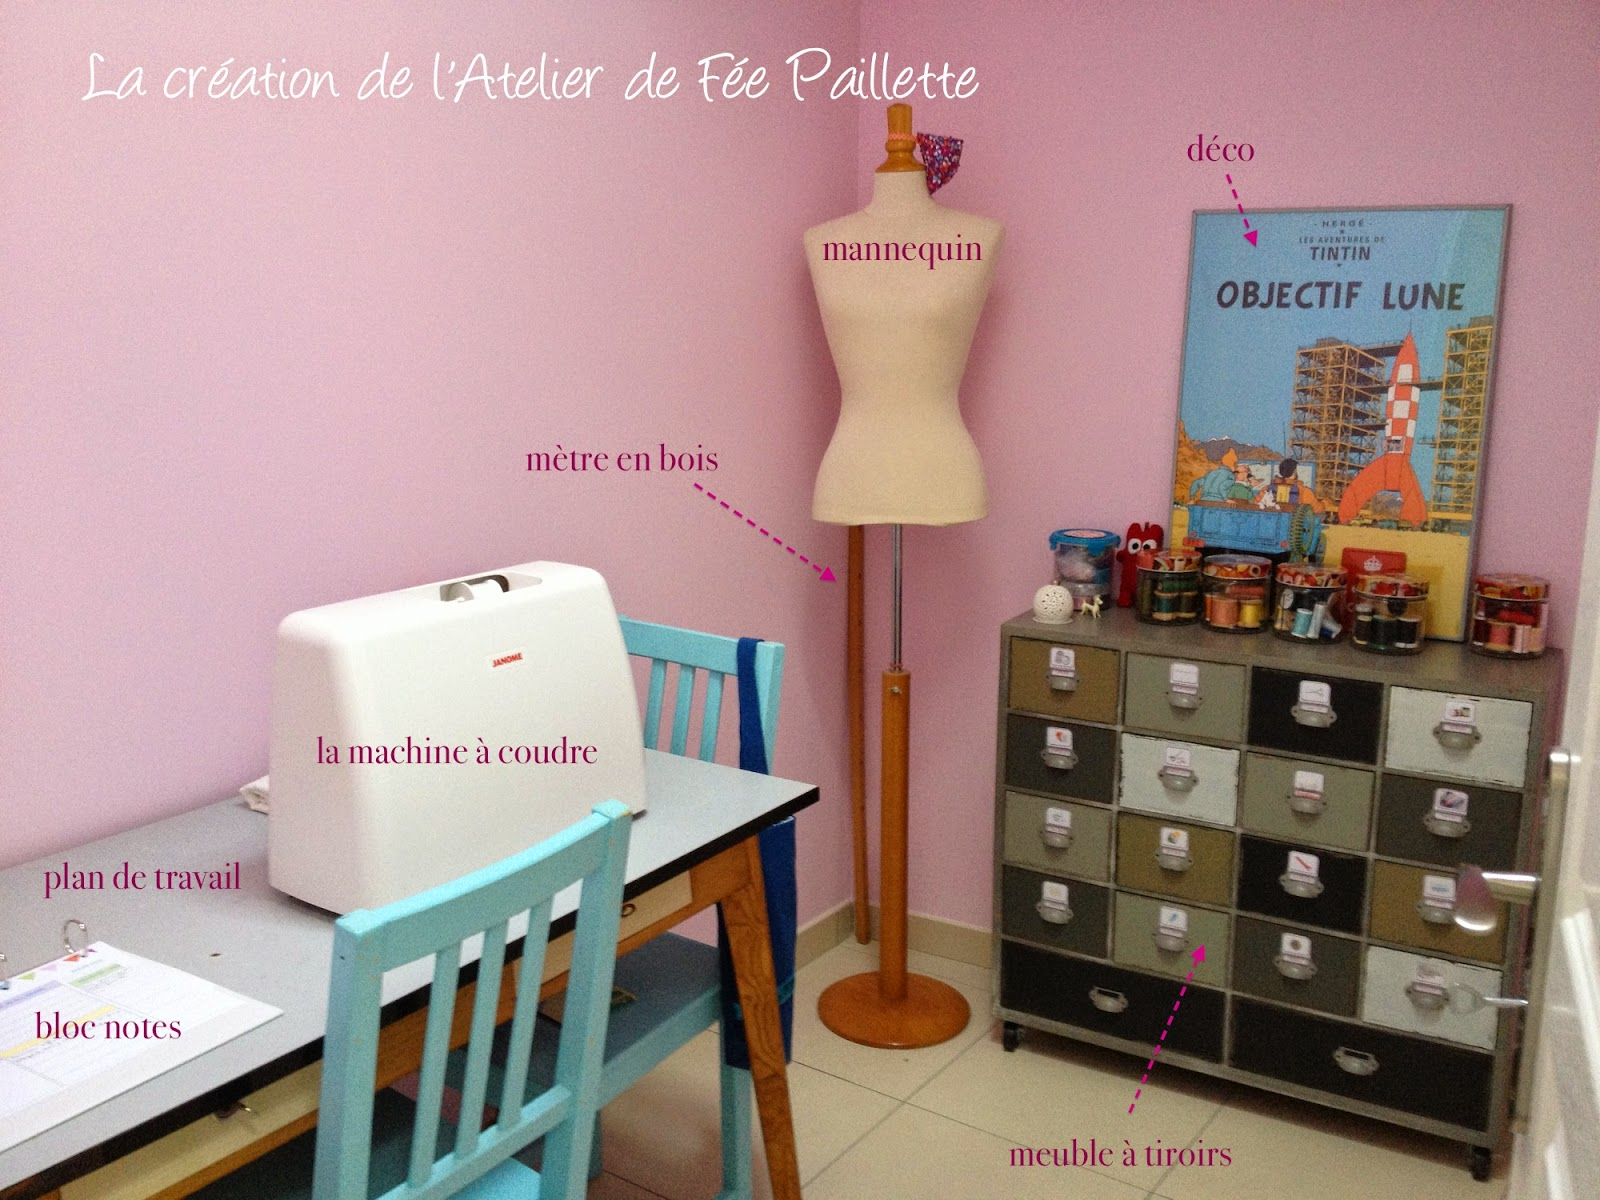 les astuces de f e paillette comment cr er un atelier ou am nager un coin couture dans un petit. Black Bedroom Furniture Sets. Home Design Ideas